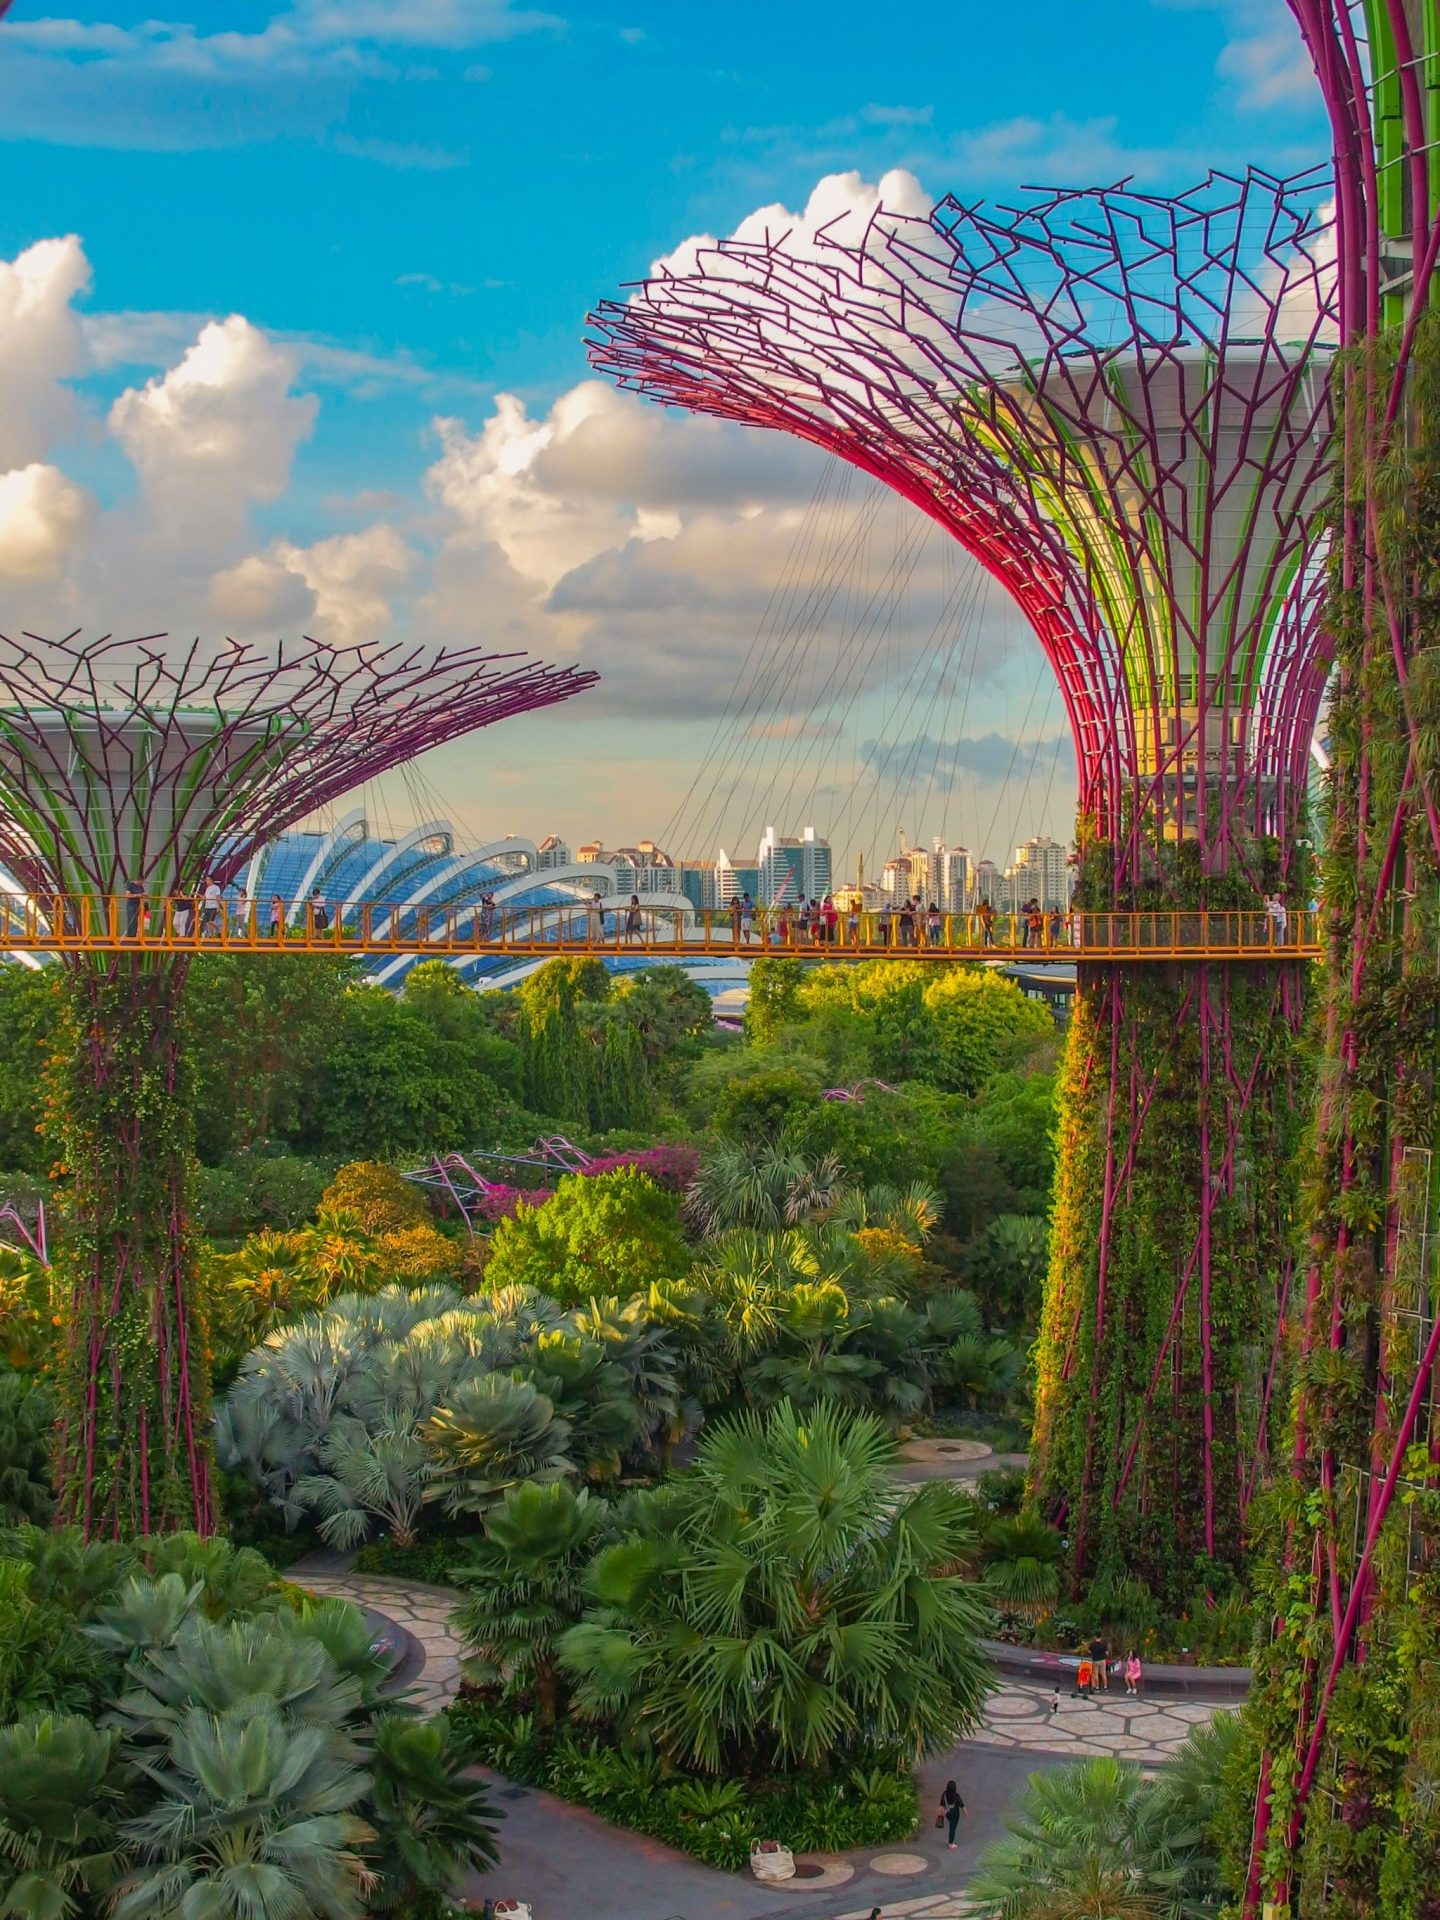 Singapore, gardens by the bay, travel, wanderlust, traveling, city, nature, travel blogger, highlights, view